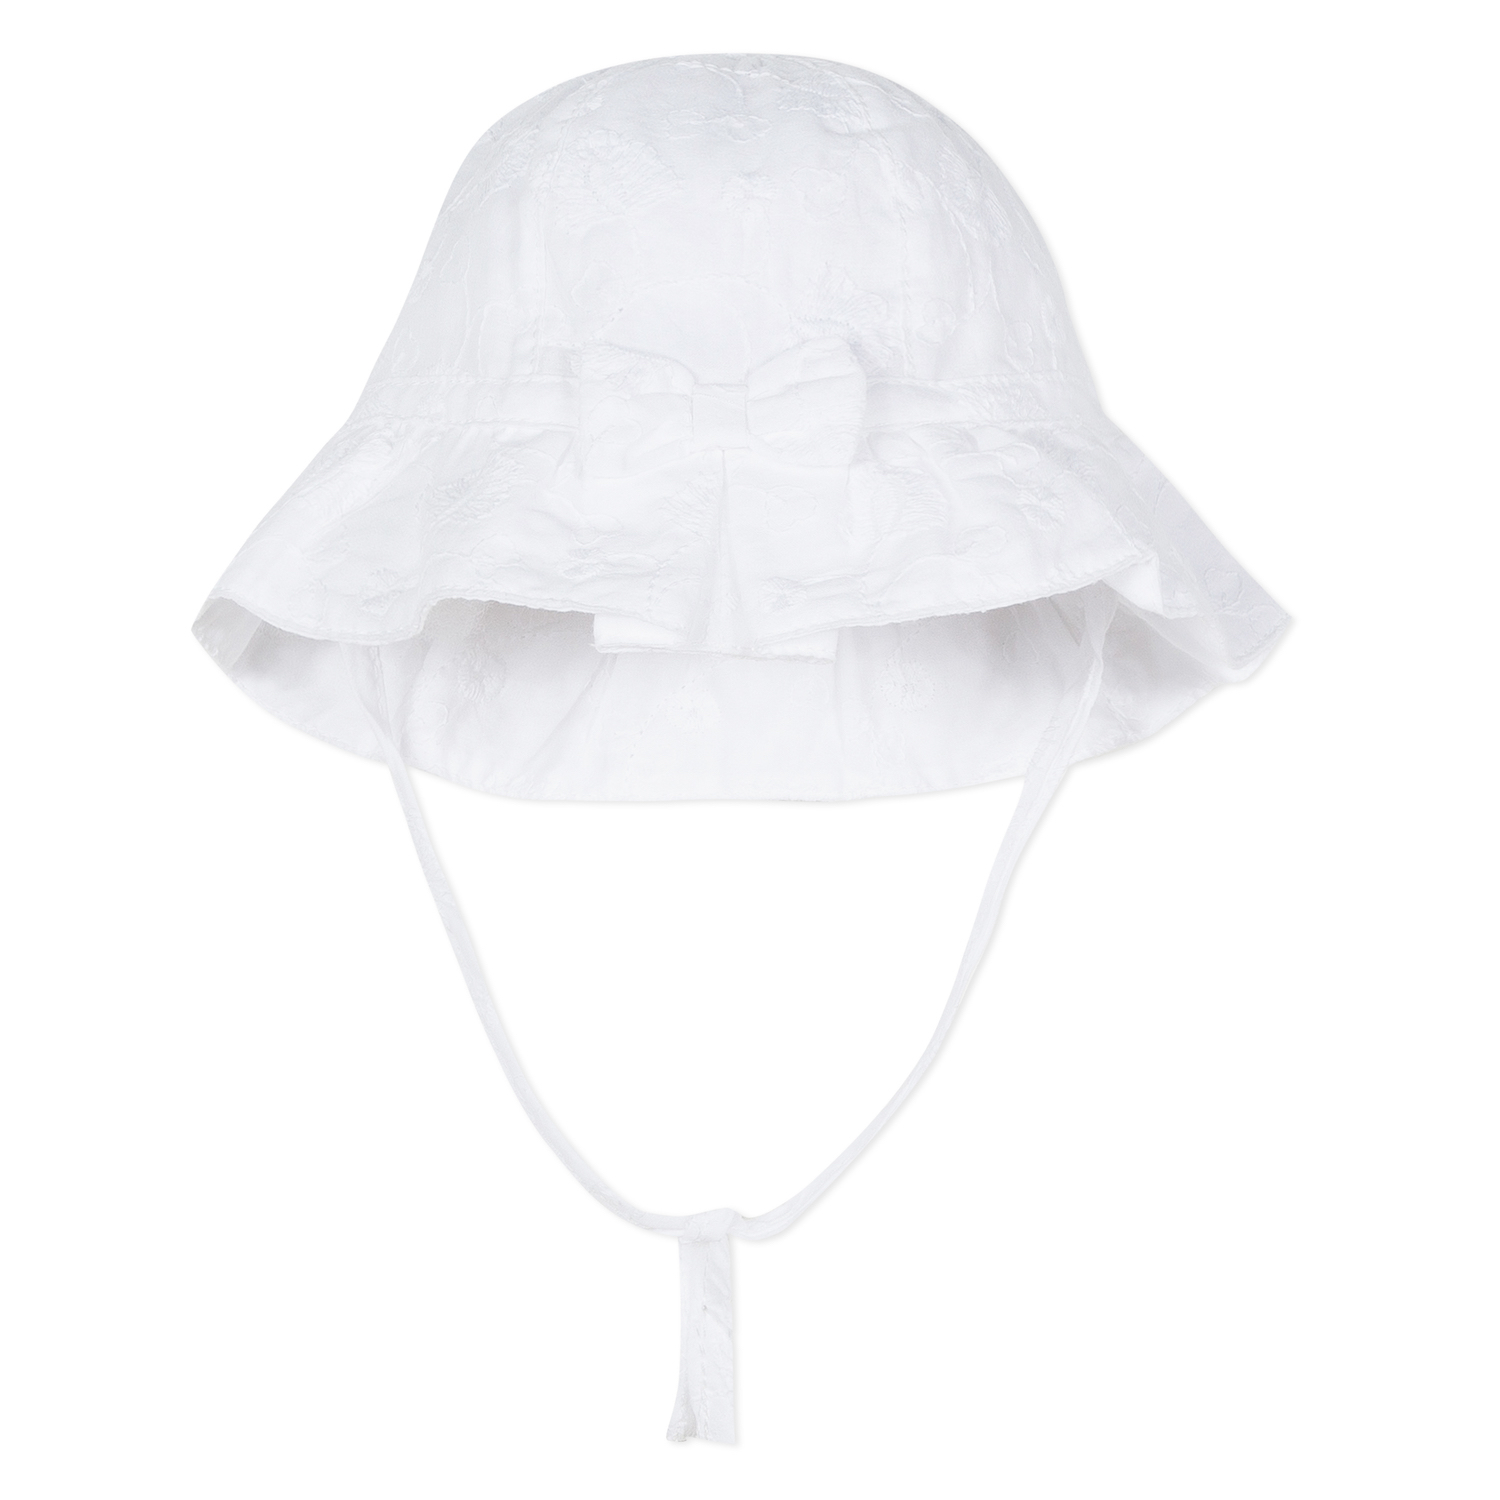 Absorba - Baby Girls White Cotton Sun Hat 1442eca789b9